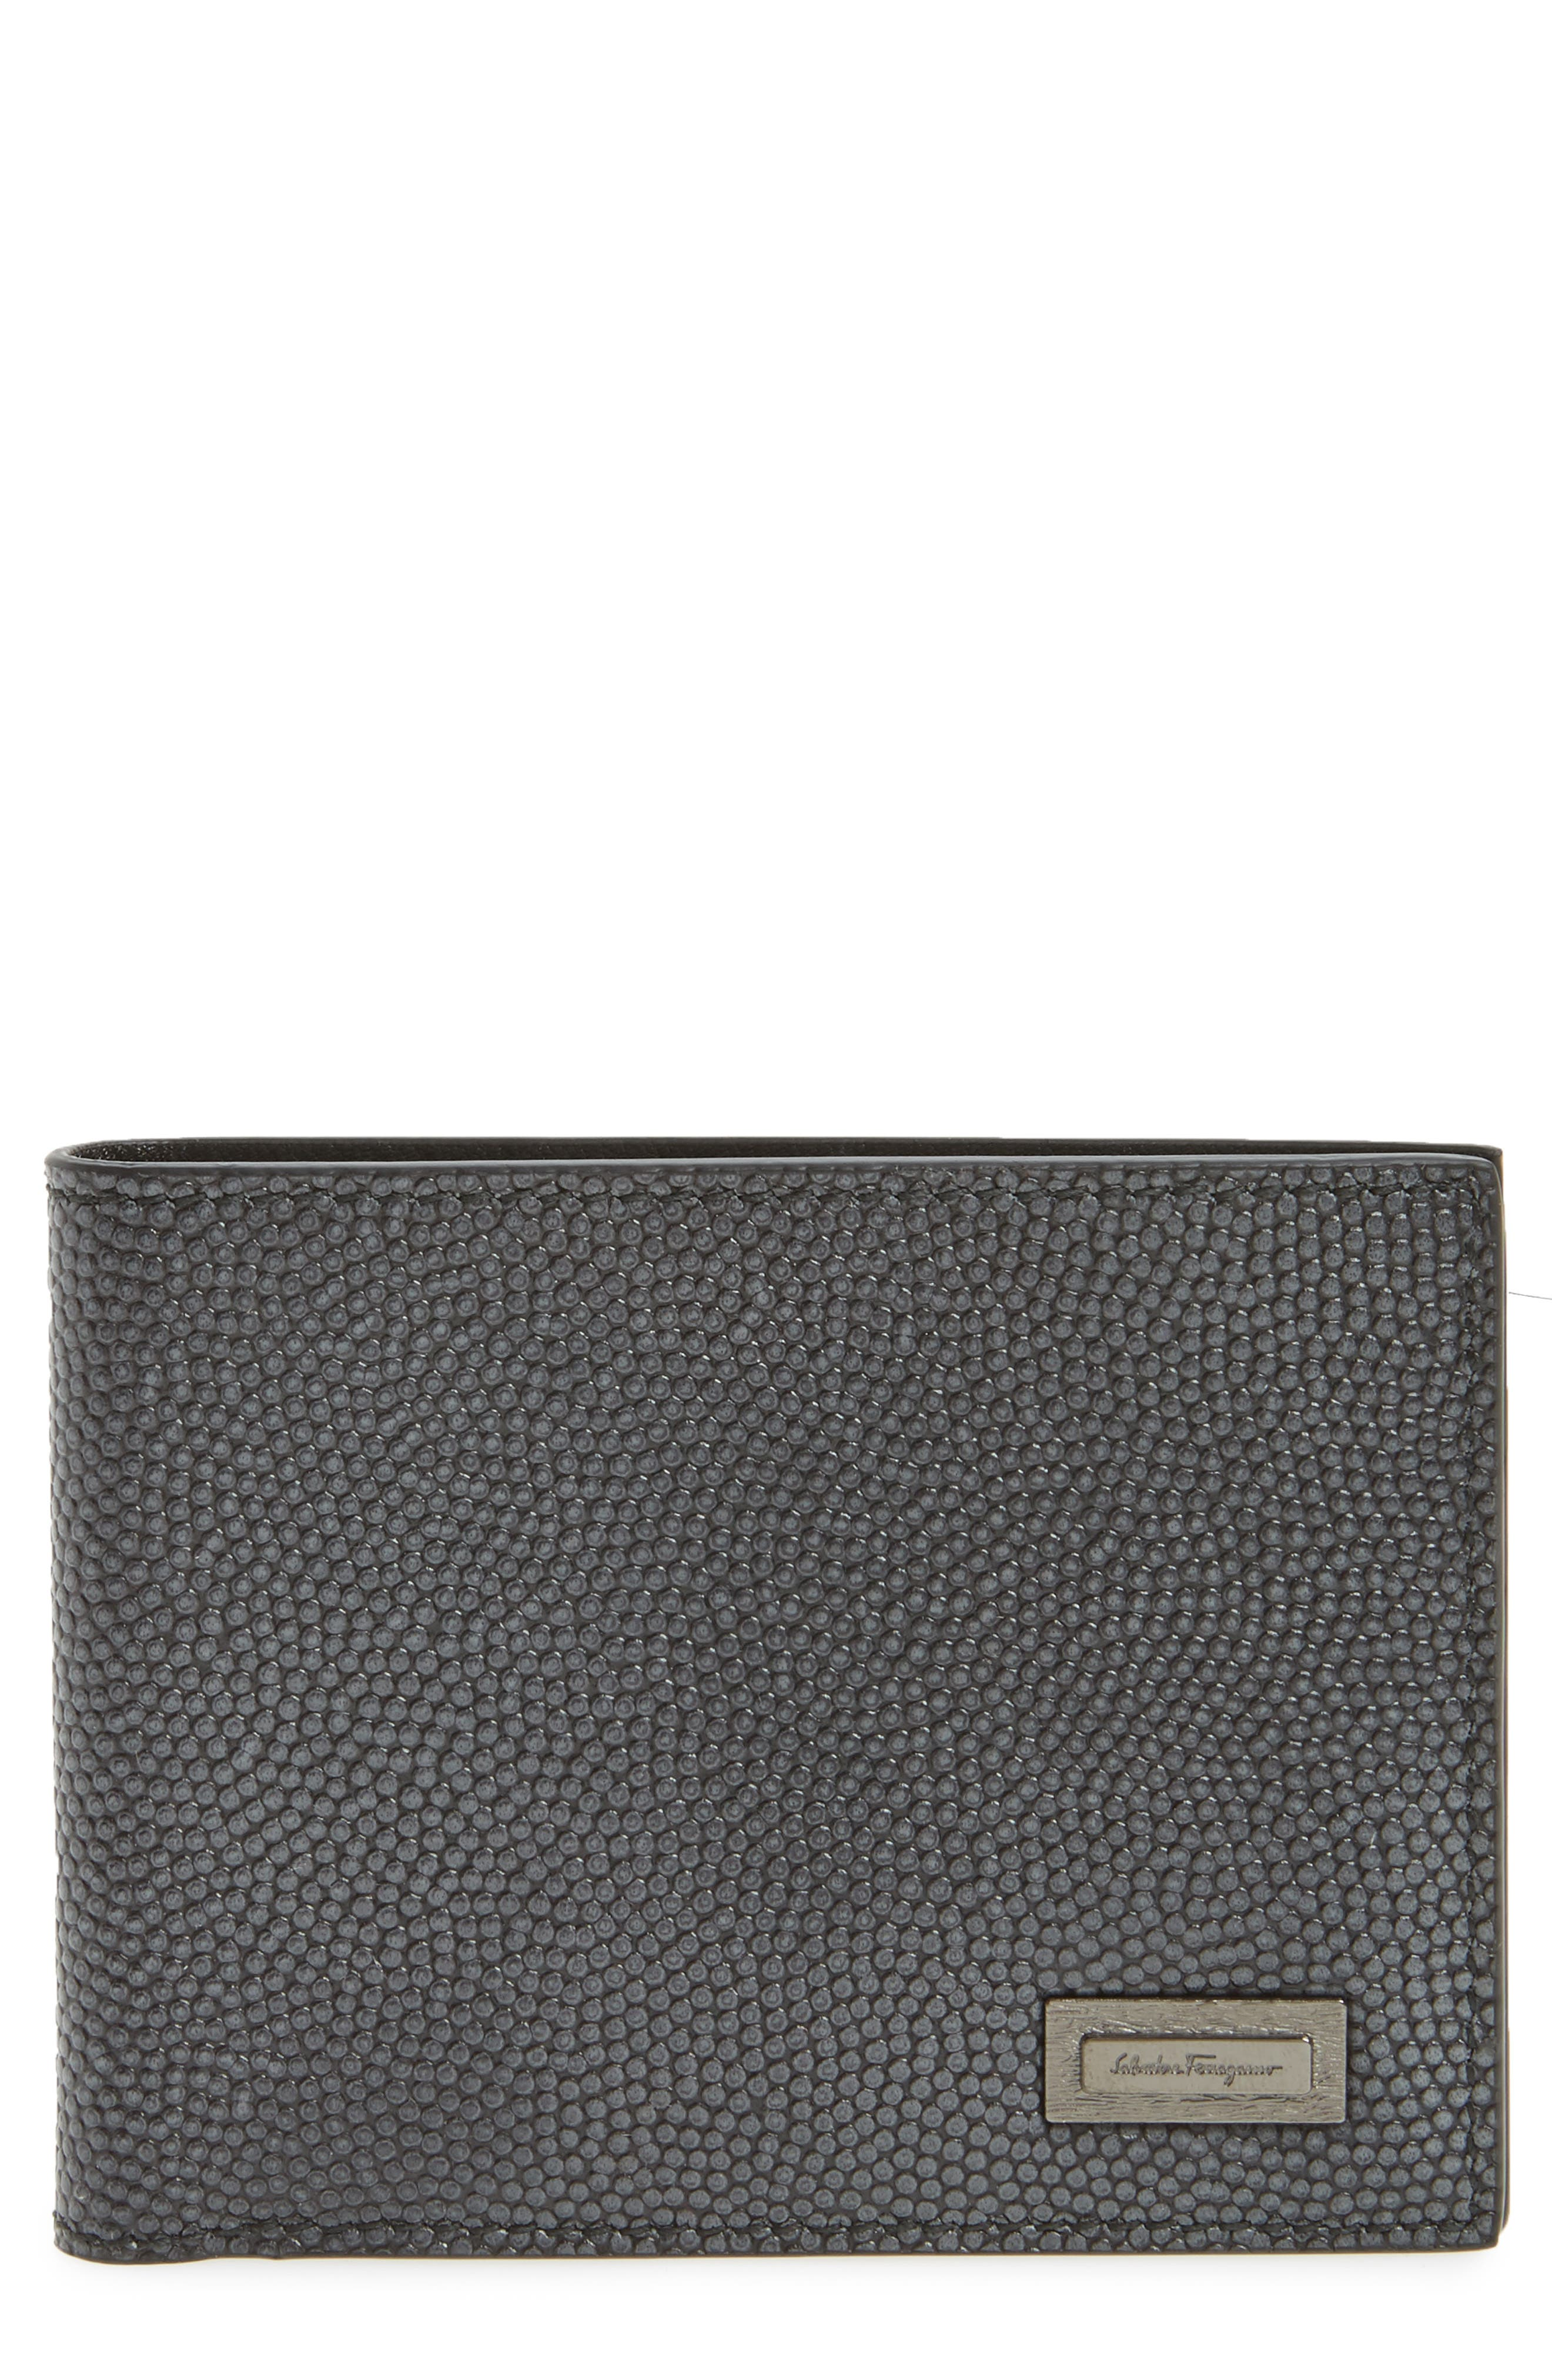 Alternate Image 1 Selected - Salvatore Ferragamo Leather Bifold Leather